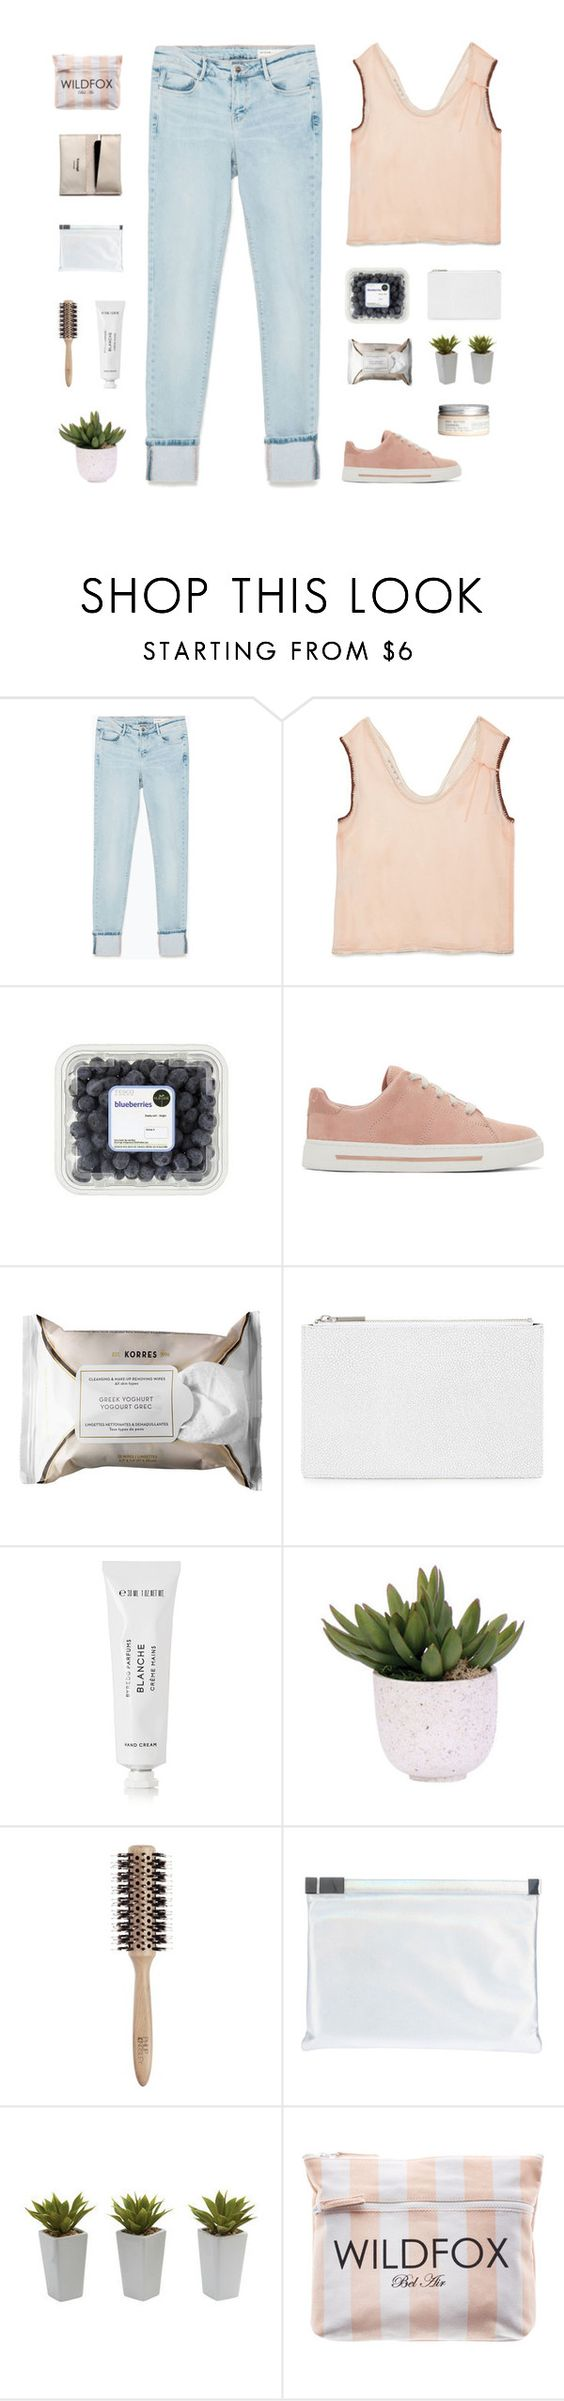 """""""Farmers Market"""" by e-rose-t ❤ liked on Polyvore featuring Zara, Marni, Marc by Marc Jacobs, Korres, Whistles, Byredo, Lux-Art Silks, Philip Kingsley, Maison Margiela and Wildfox"""